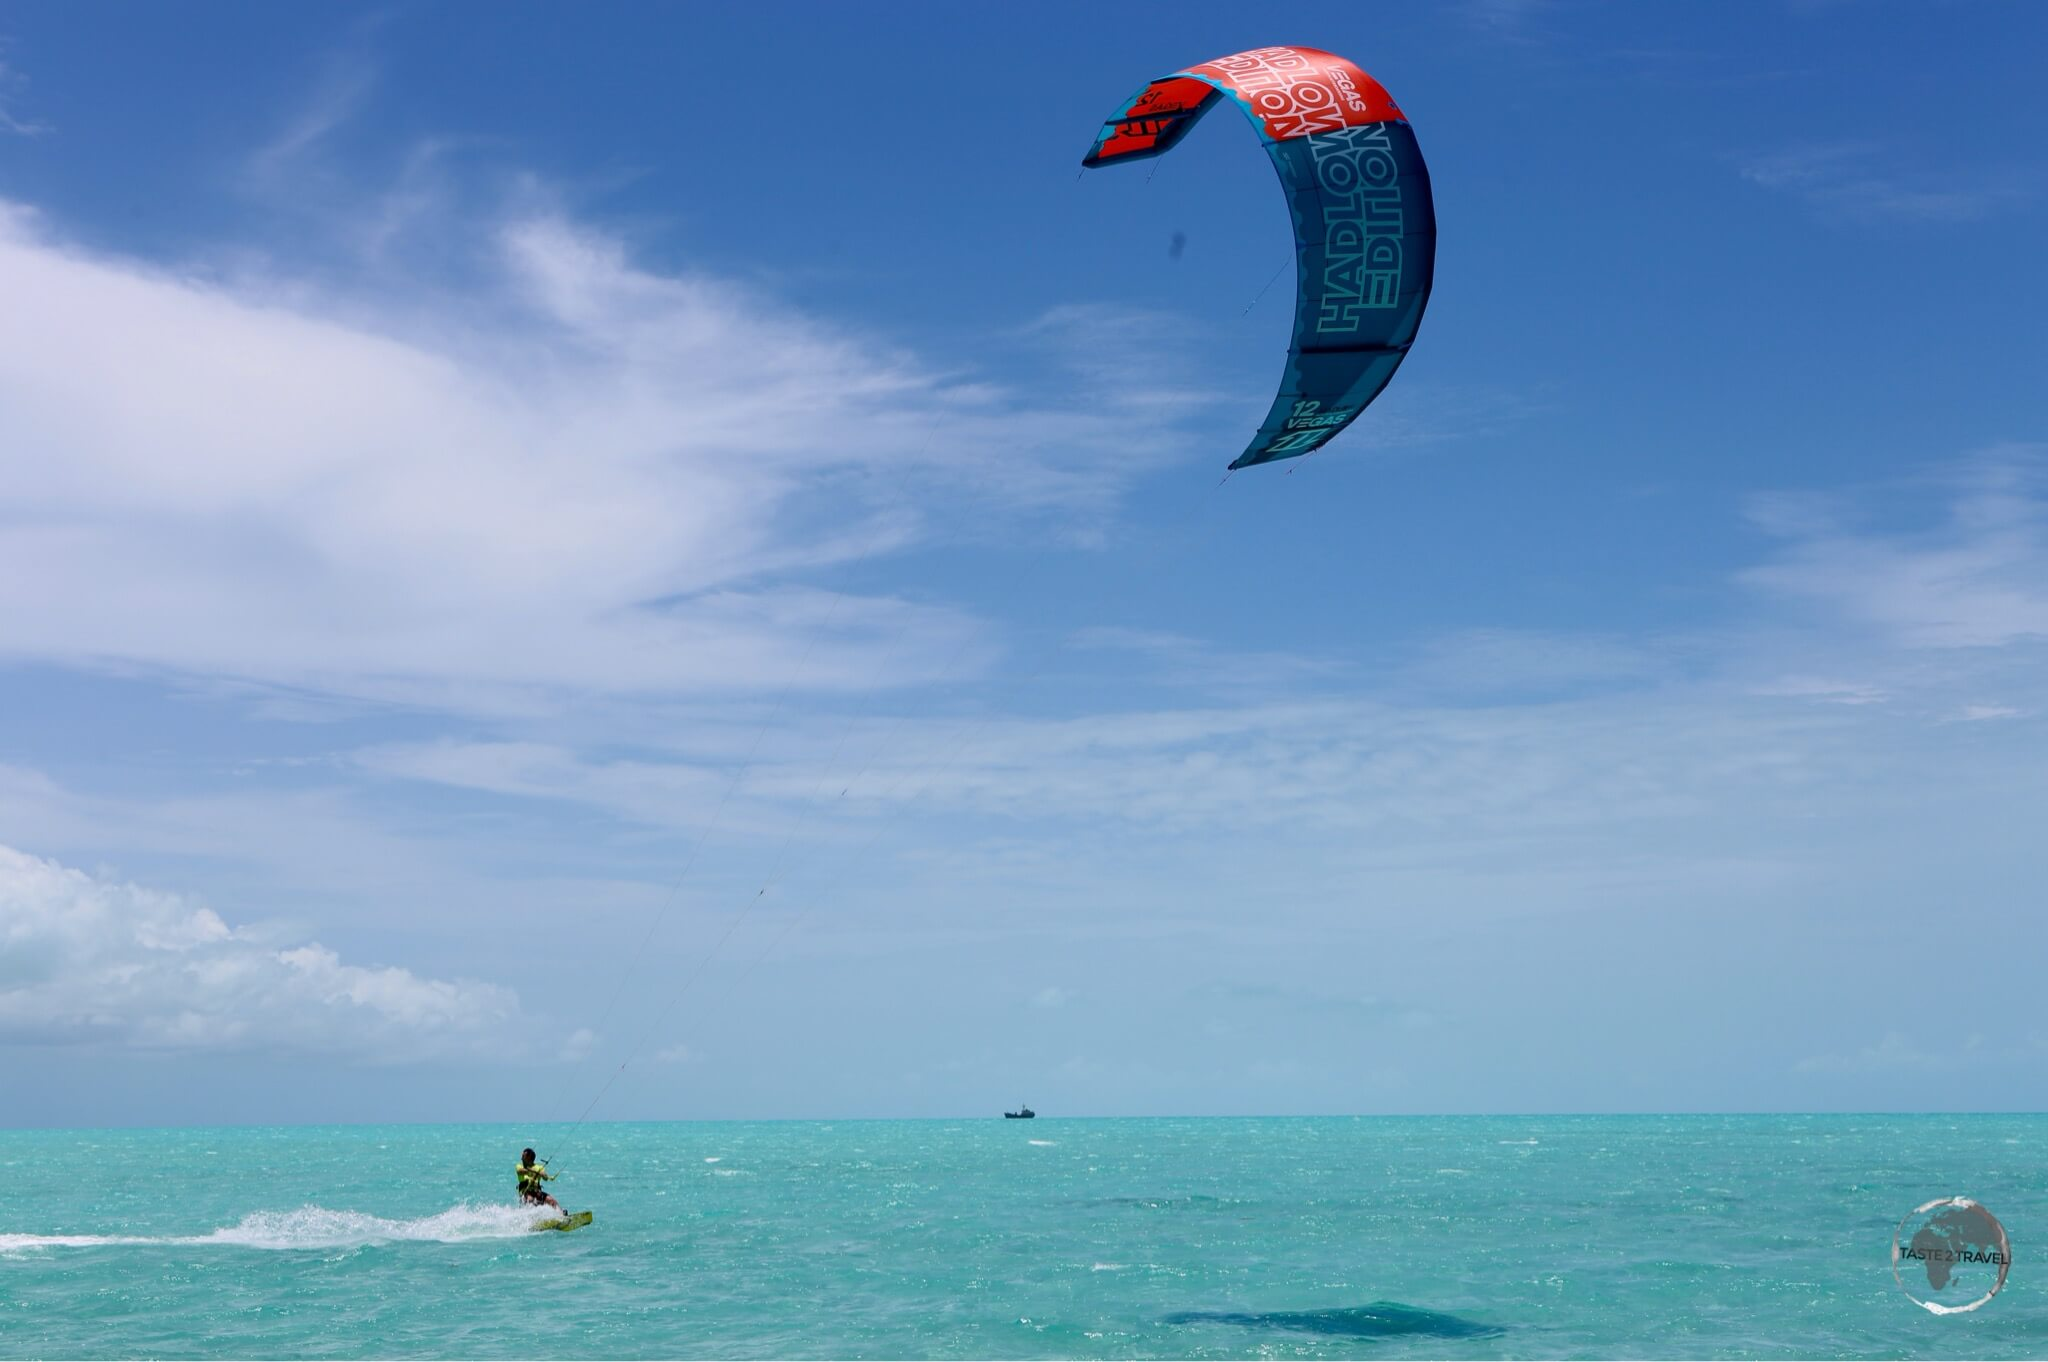 Kite-boarding is a popular activity on windy Long Bay.